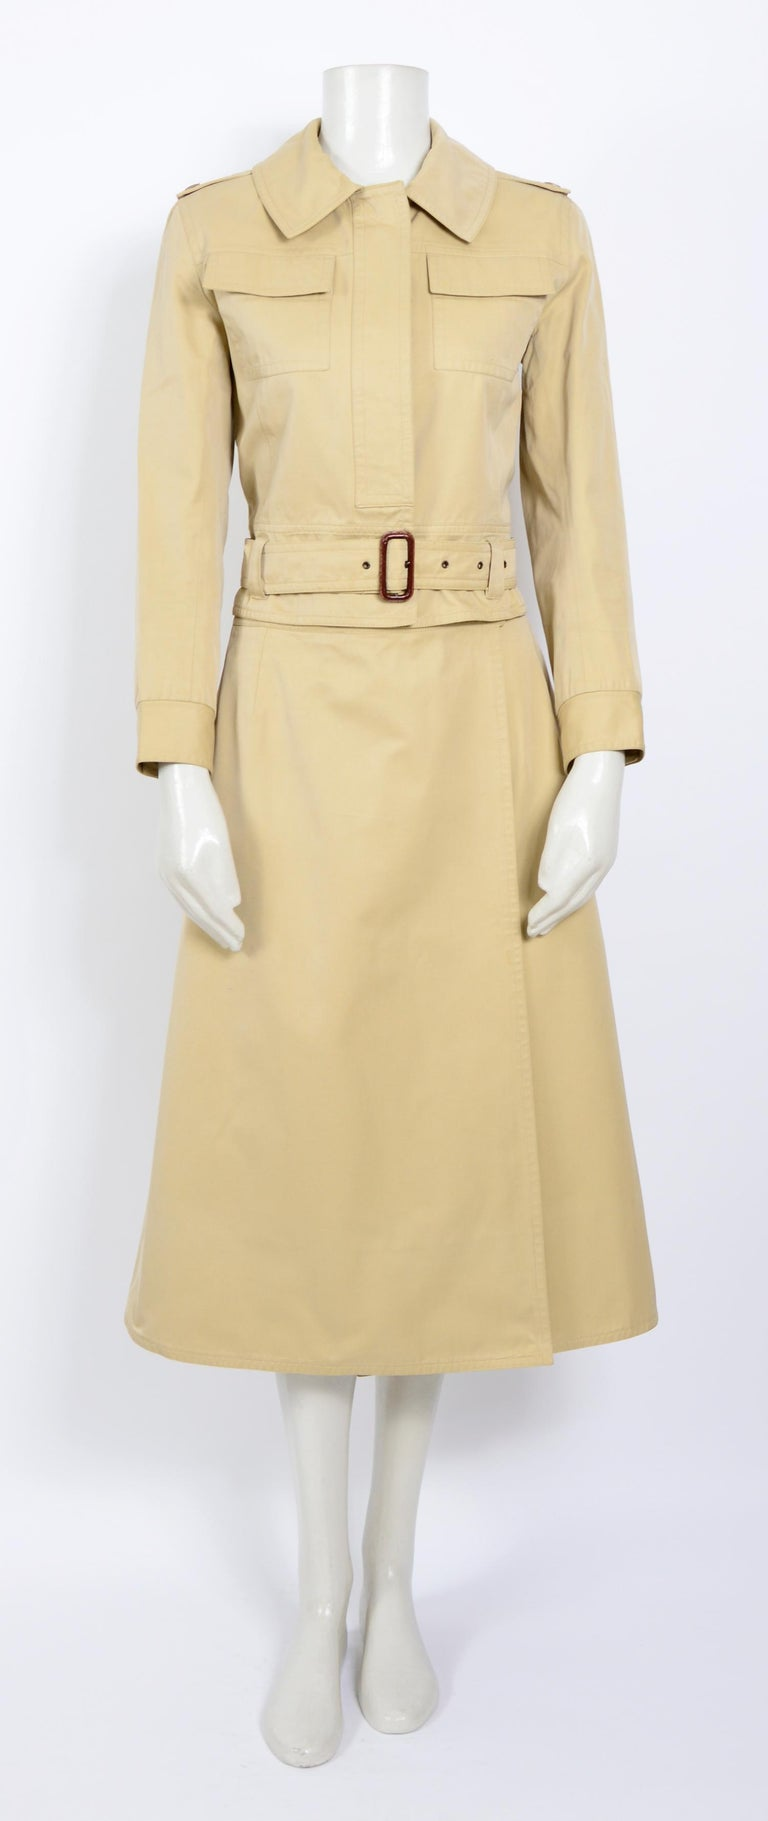 Iconic, important, documented, museum-worthy collector's item seen and photographed on Loulou de la Falaise. Stunning and in perfect vintage condition. Measurements taken flat in inches.  Jacket : Sh to Sh 15,5inch/39cm - Ua to Ua 18inch/46cm(x2) -